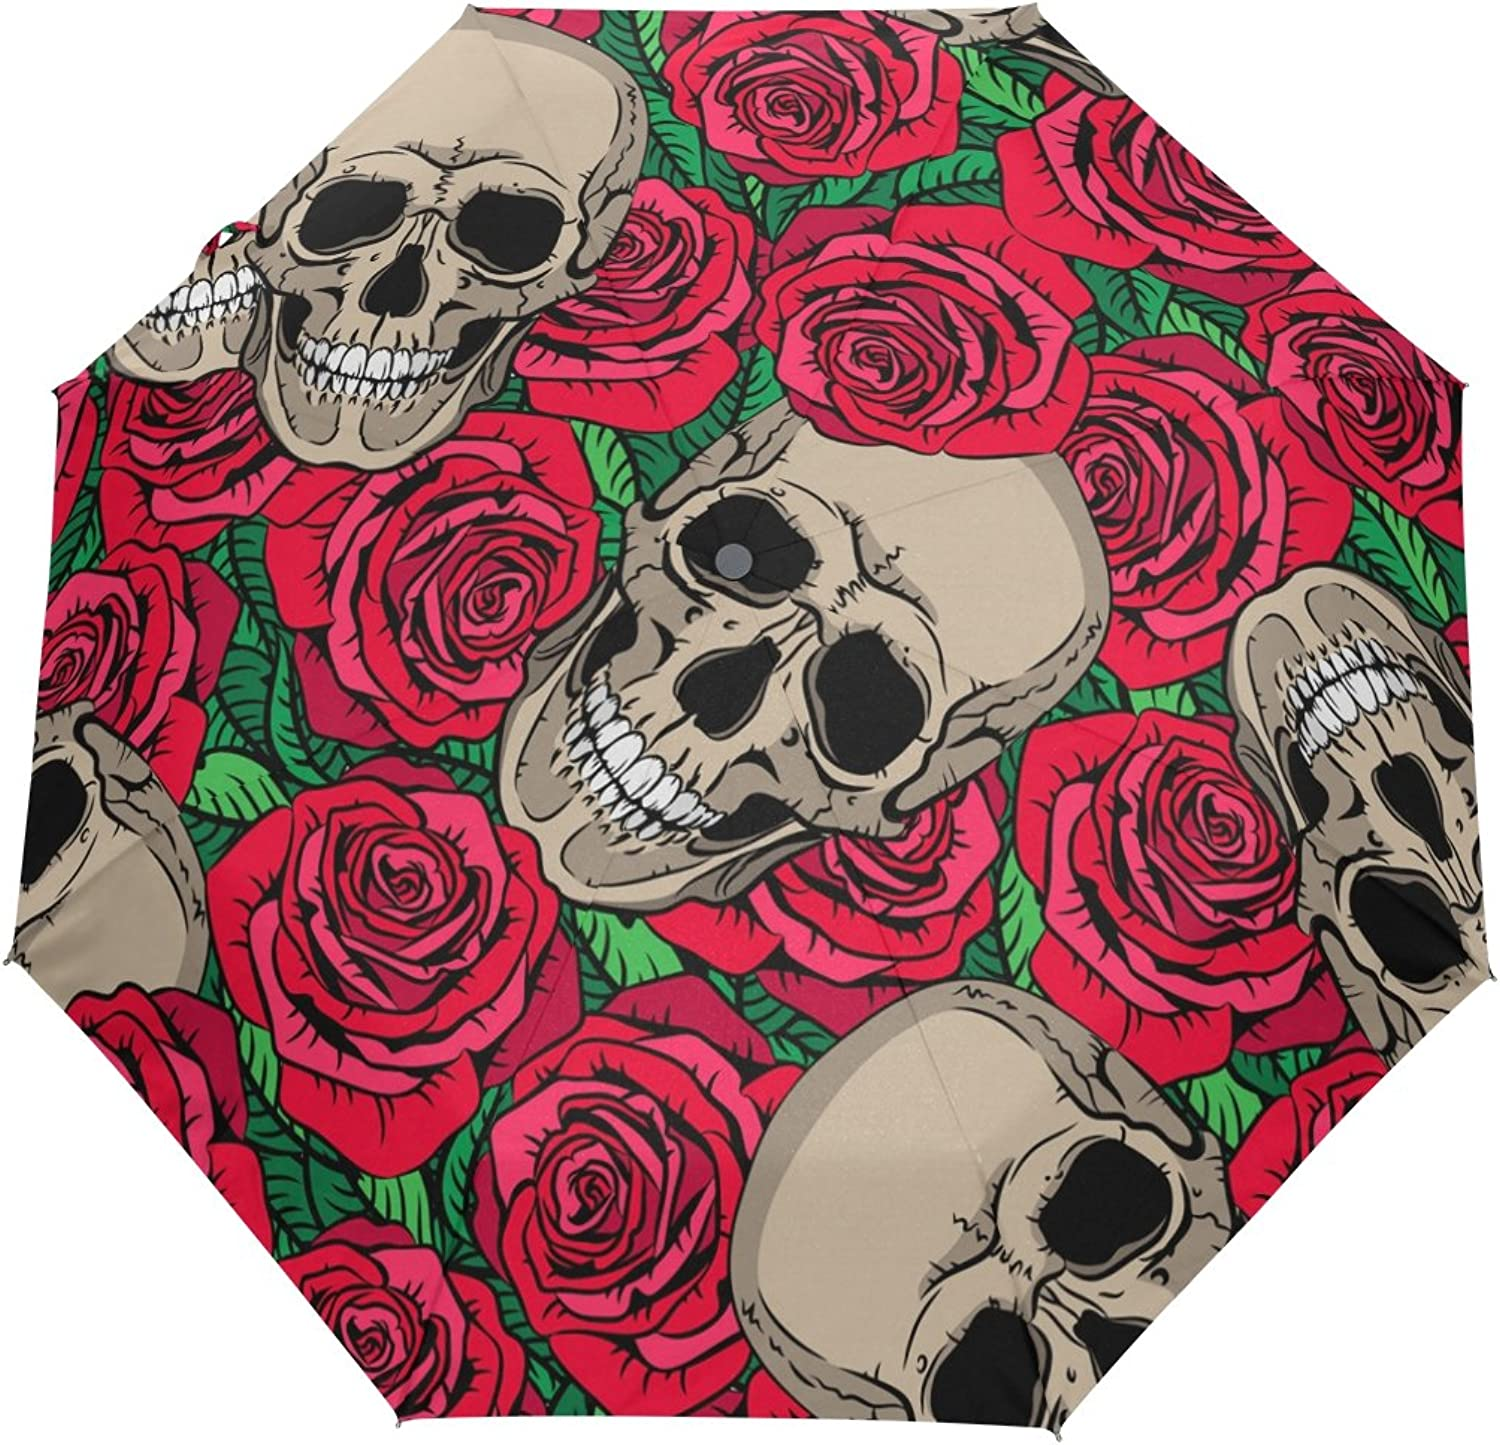 MASSIKOA Skulls and Red pinks Umbrella Double Sided Canopy Auto Open Close Foldable Travel Rain Umbrellas